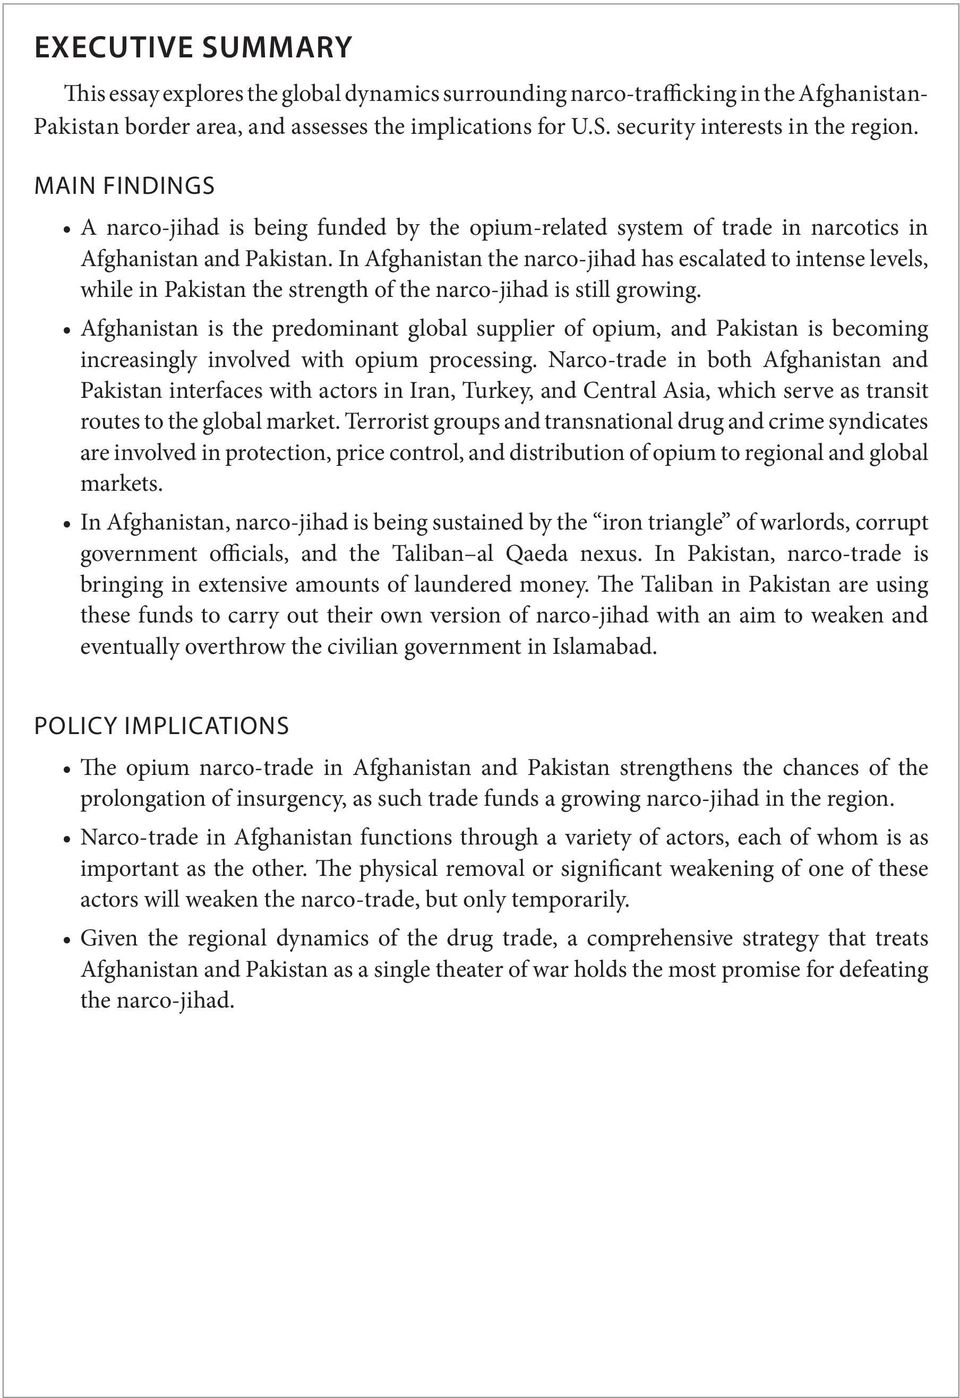 In Afghanistan the narco-jihad has escalated to intense levels, while in Pakistan the strength of the narco-jihad is still growing.